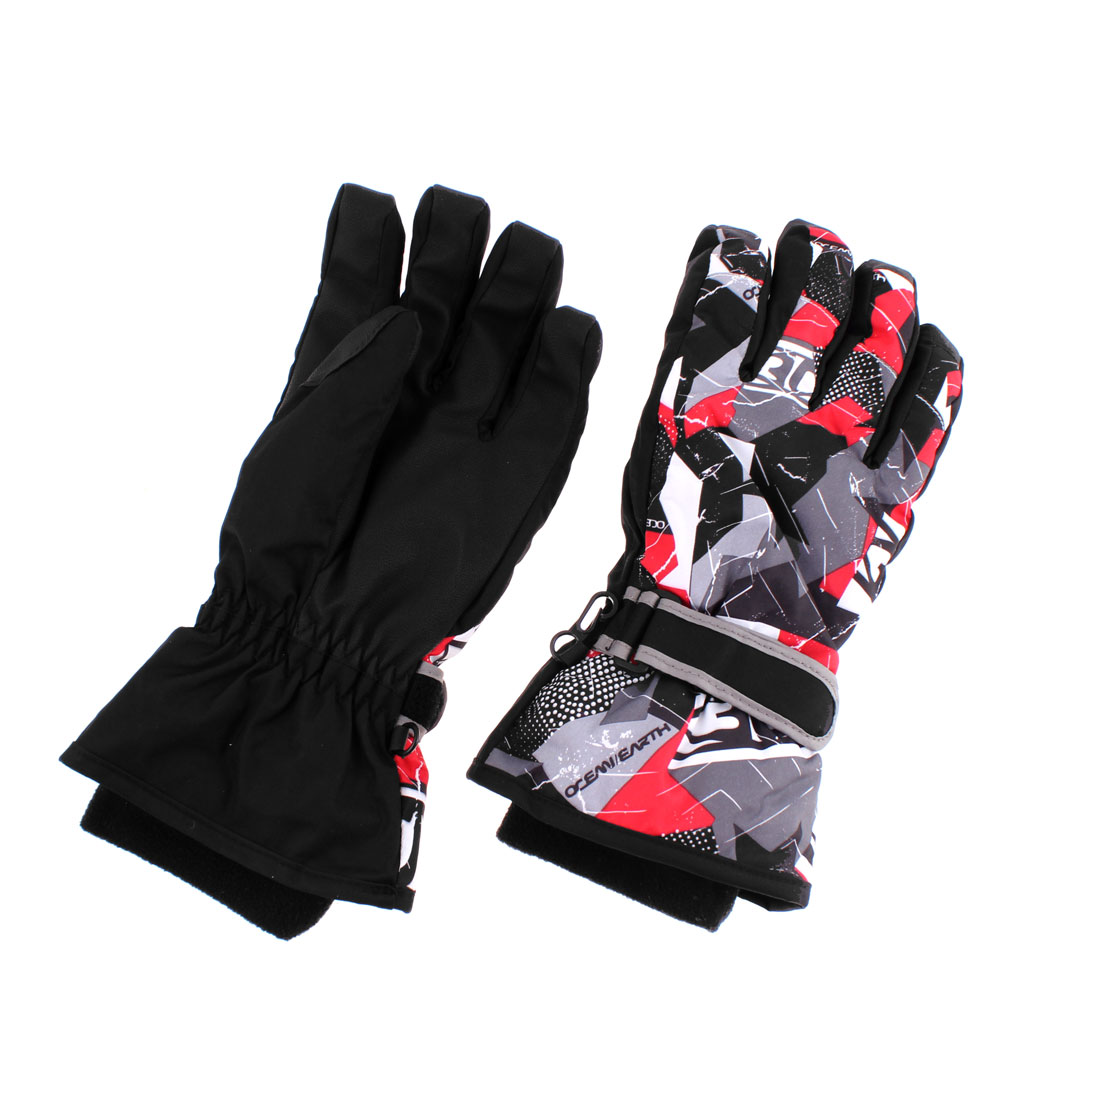 Kids Winter Snow Snowboard Ski Gloves Black S Pair